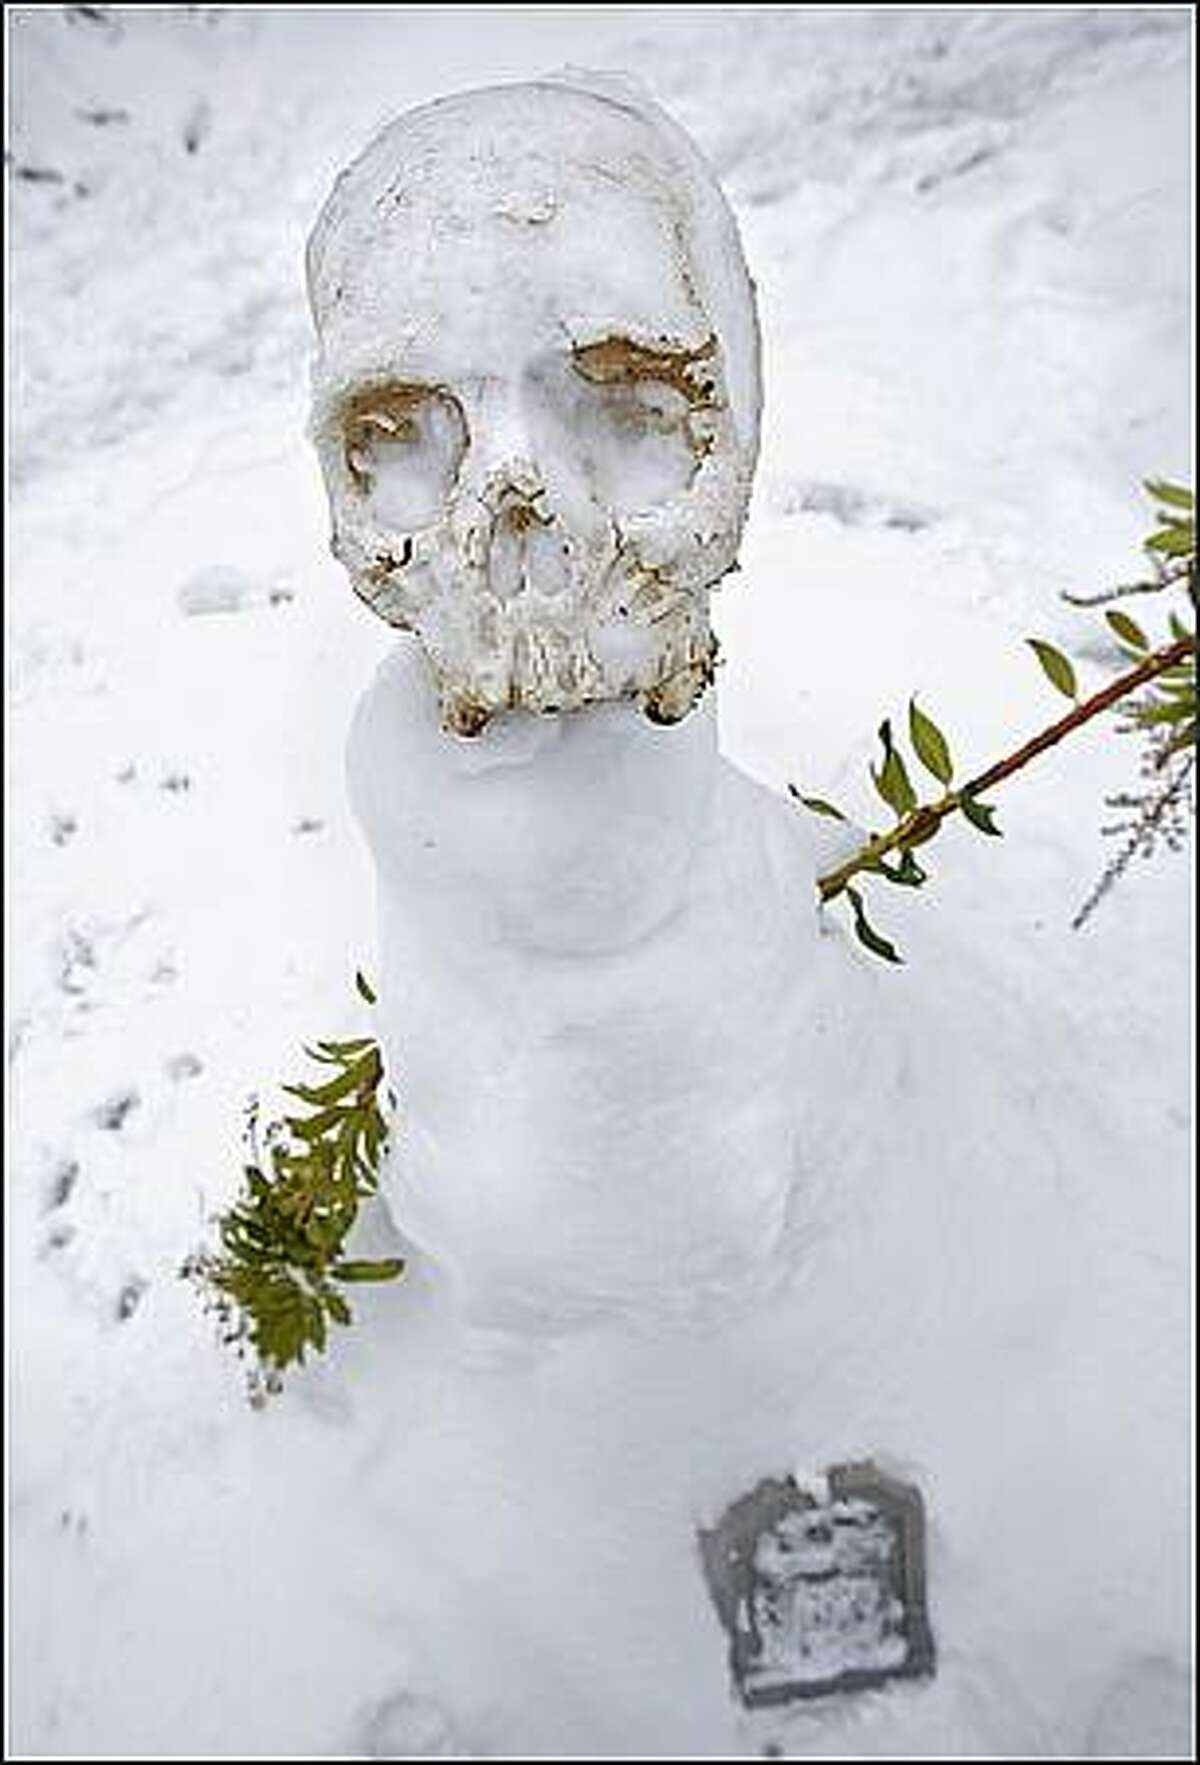 A skull finds new life as a snowman's head in Ballard. Dec. 23, 2008.